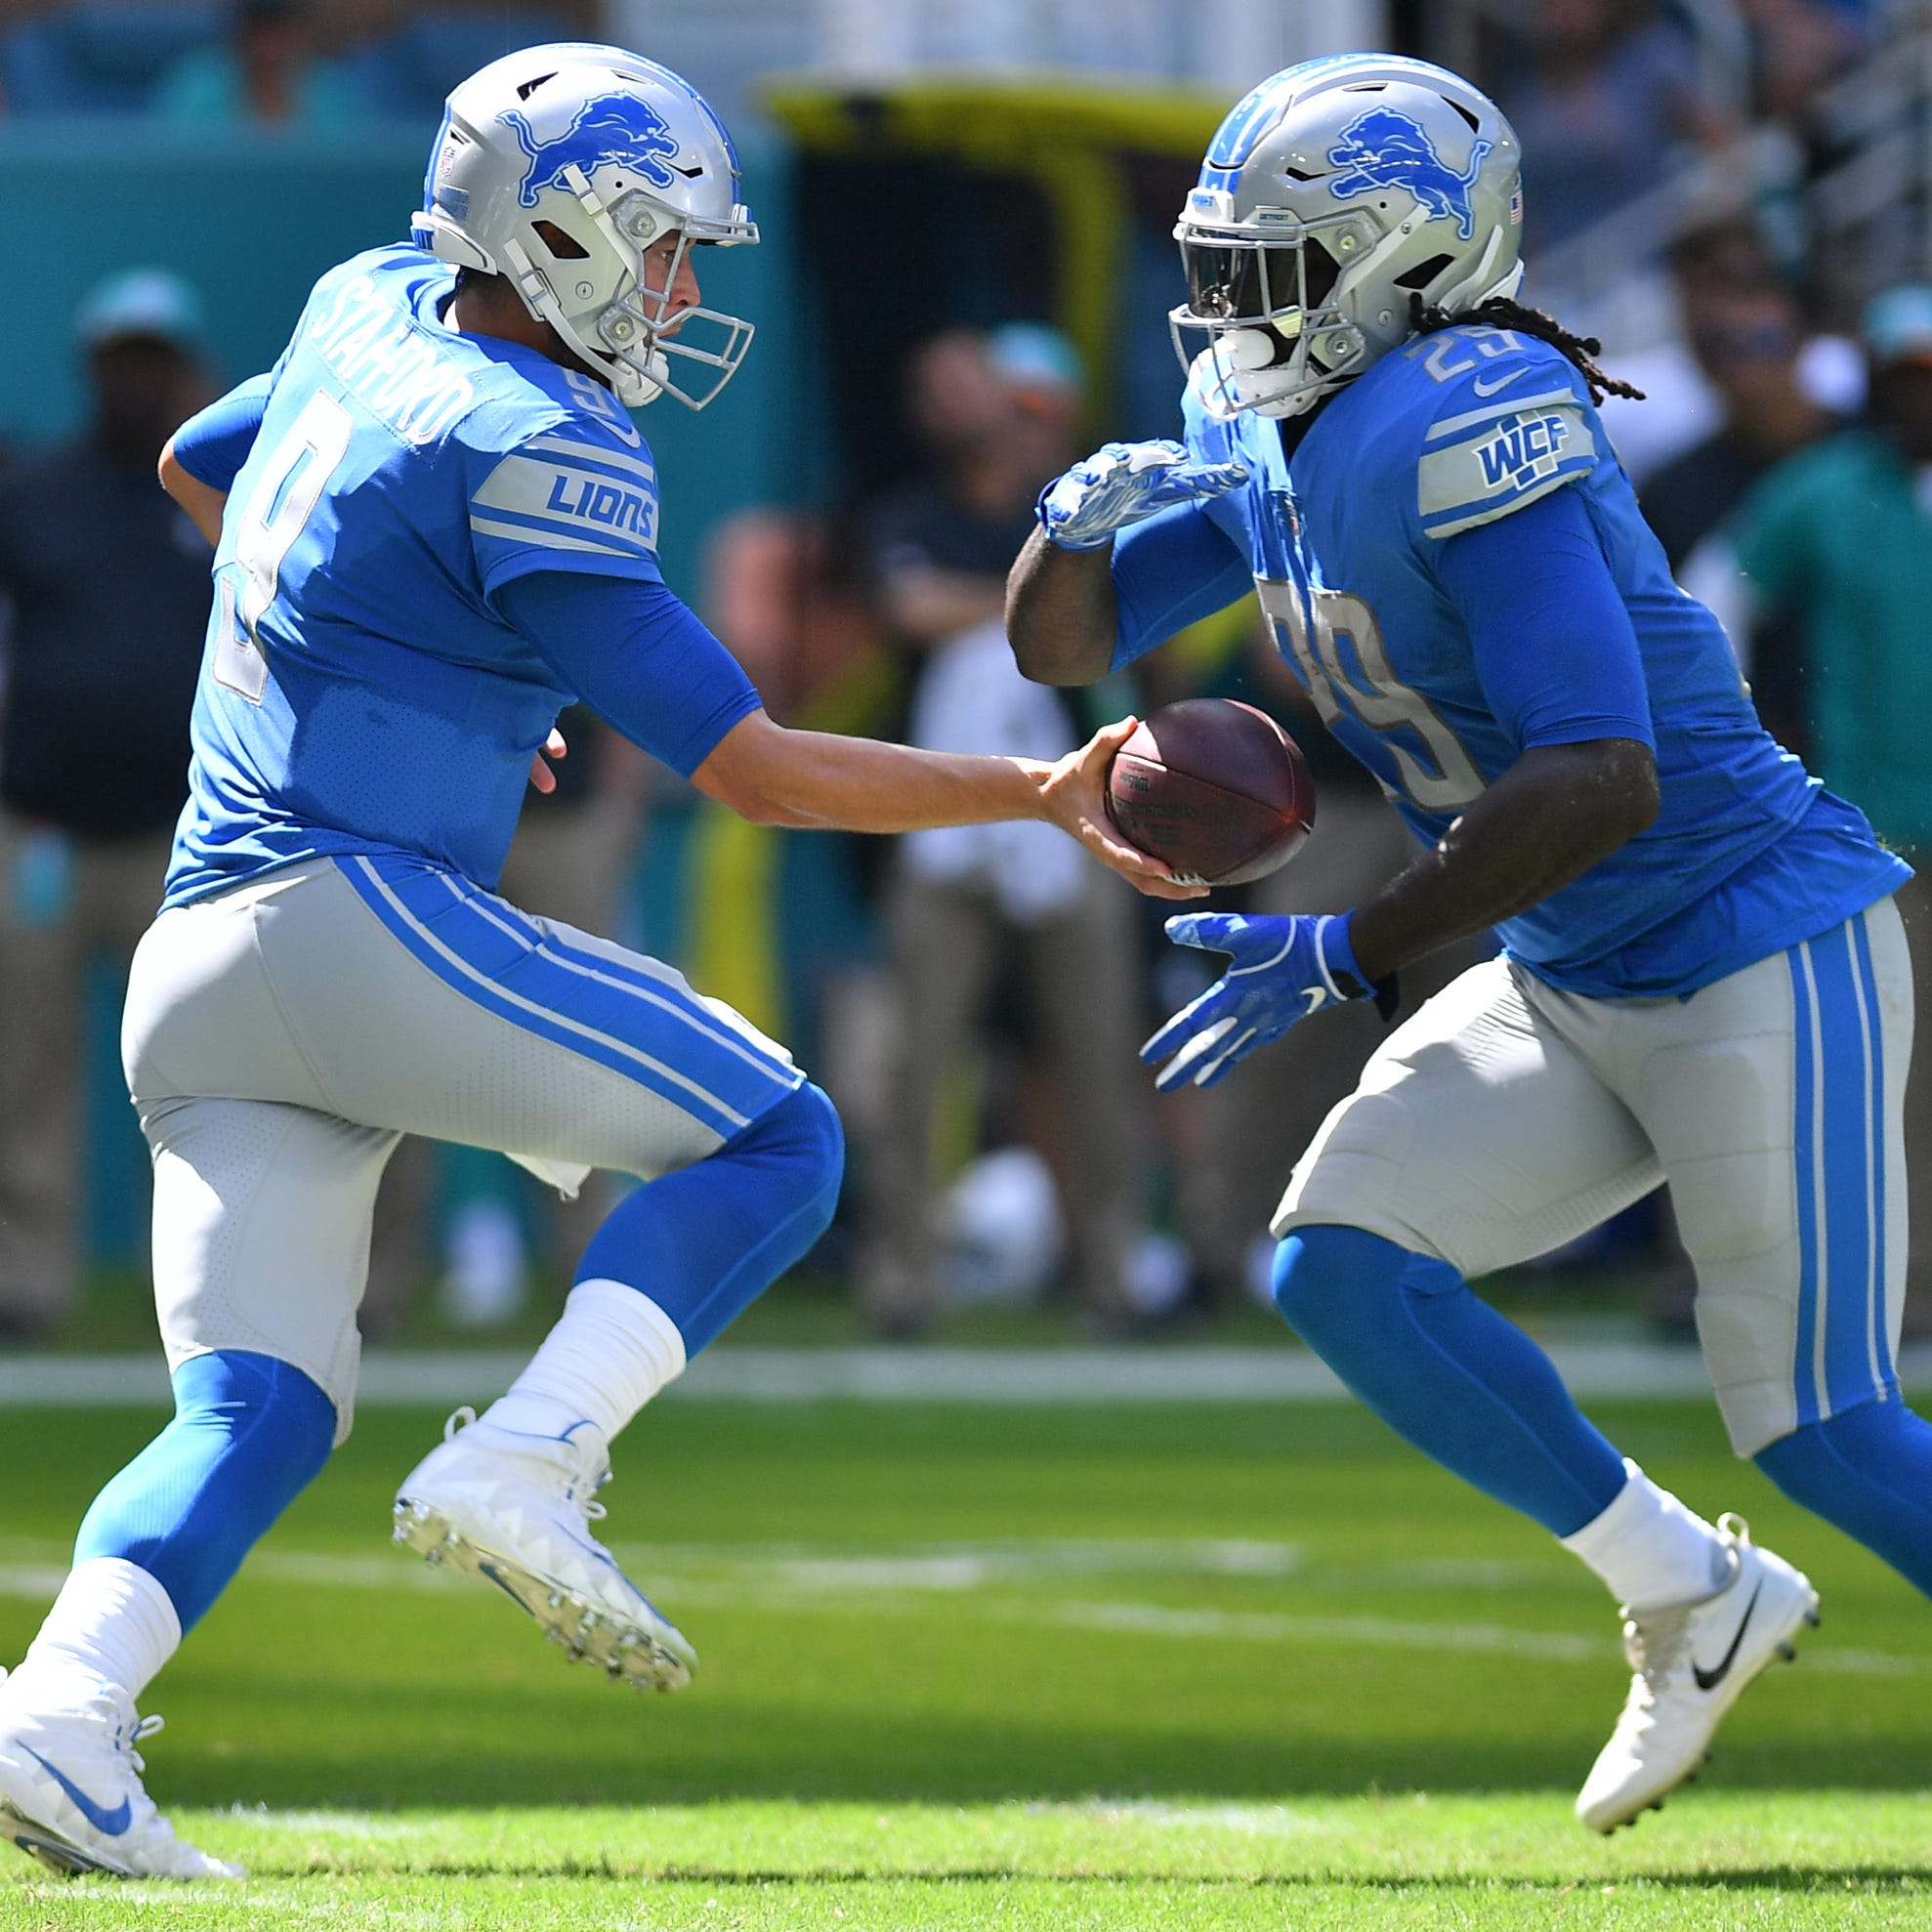 Detroit Lions grades: Best offensive performance of 2018 vs. Dolphins